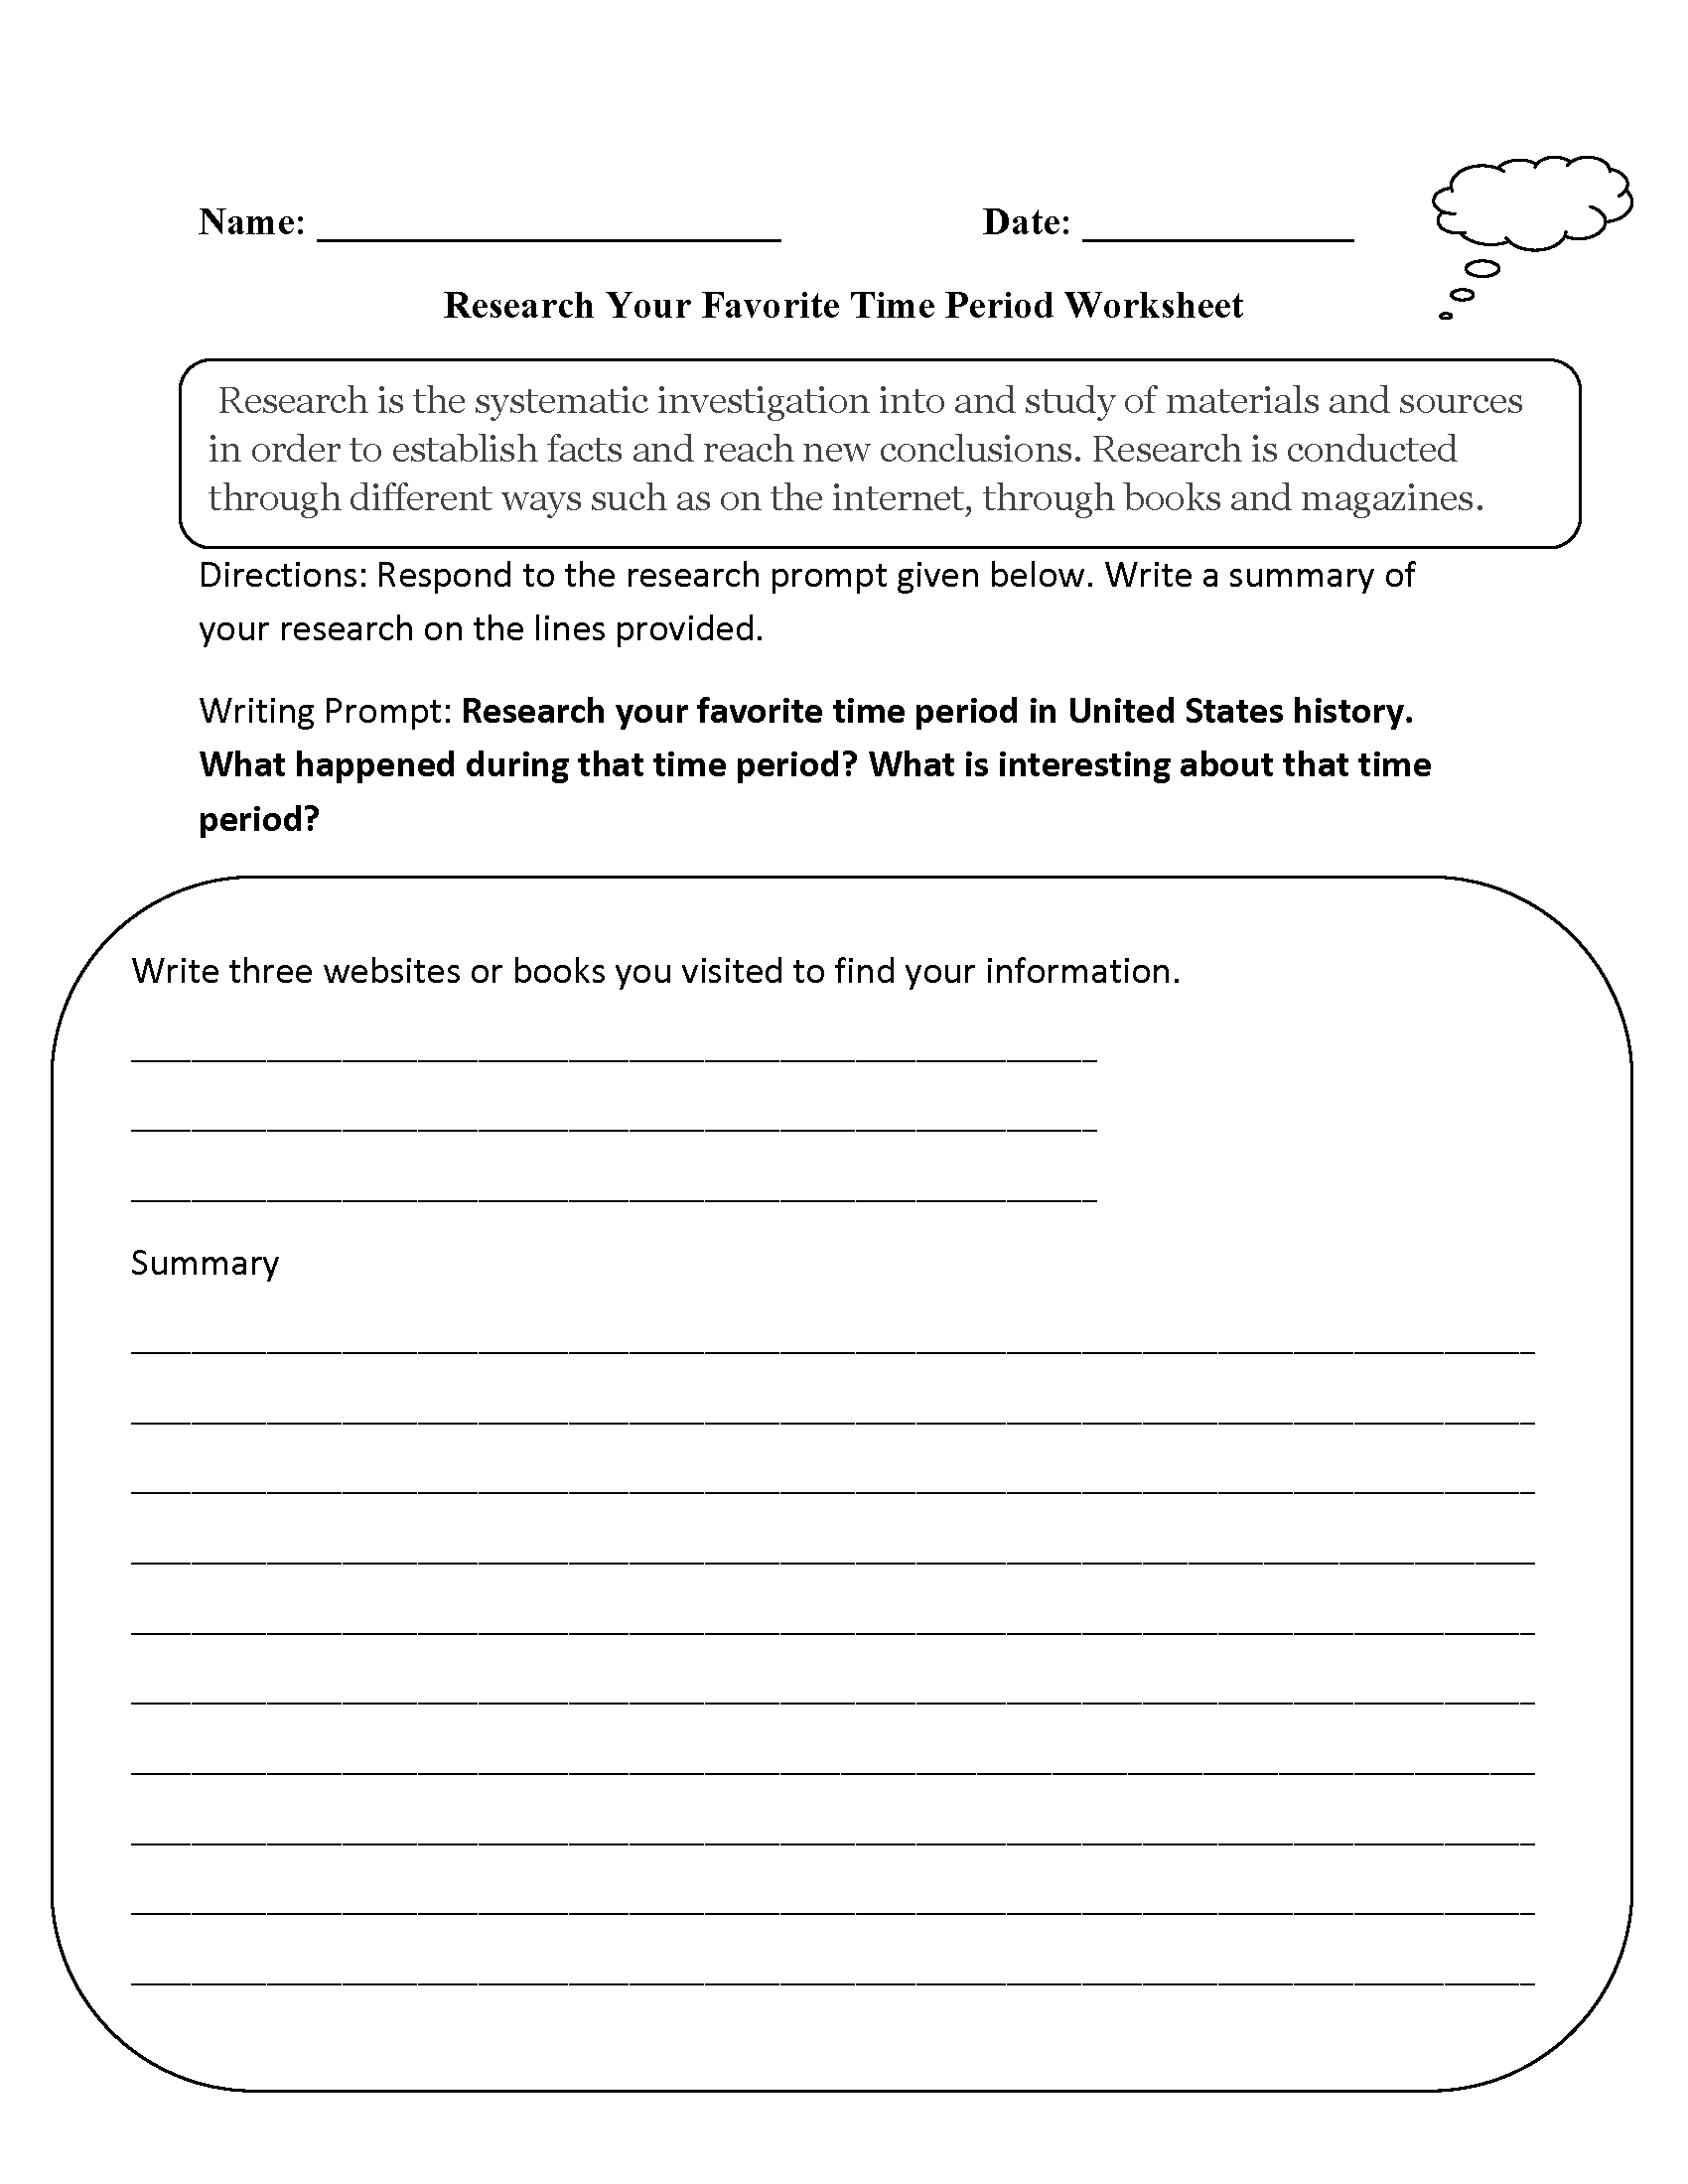 Research Favorite Time Period Worksheet